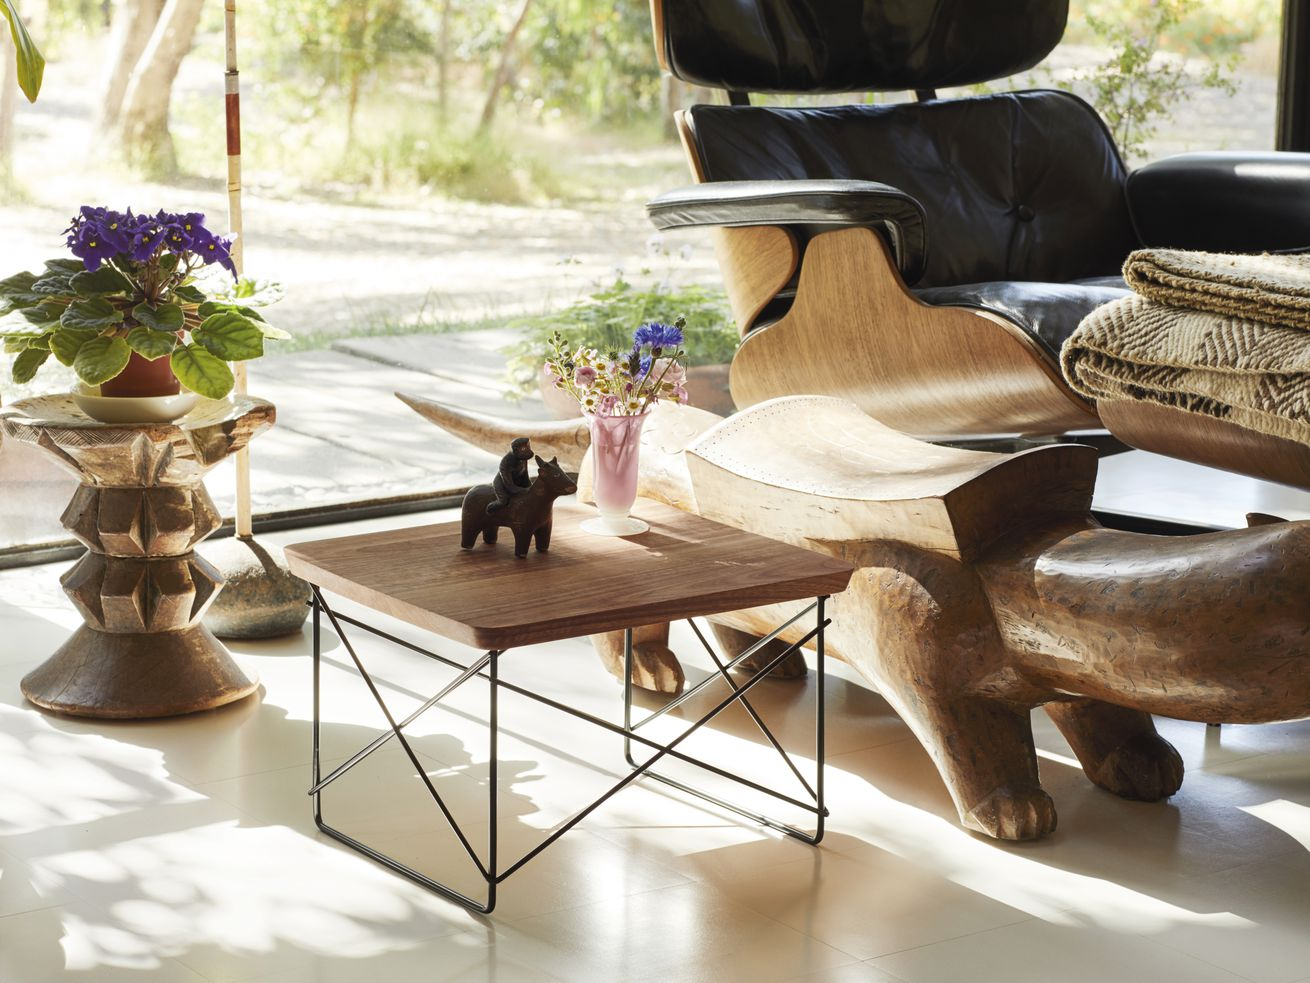 Own a piece of the Eames House with these limited edition tables